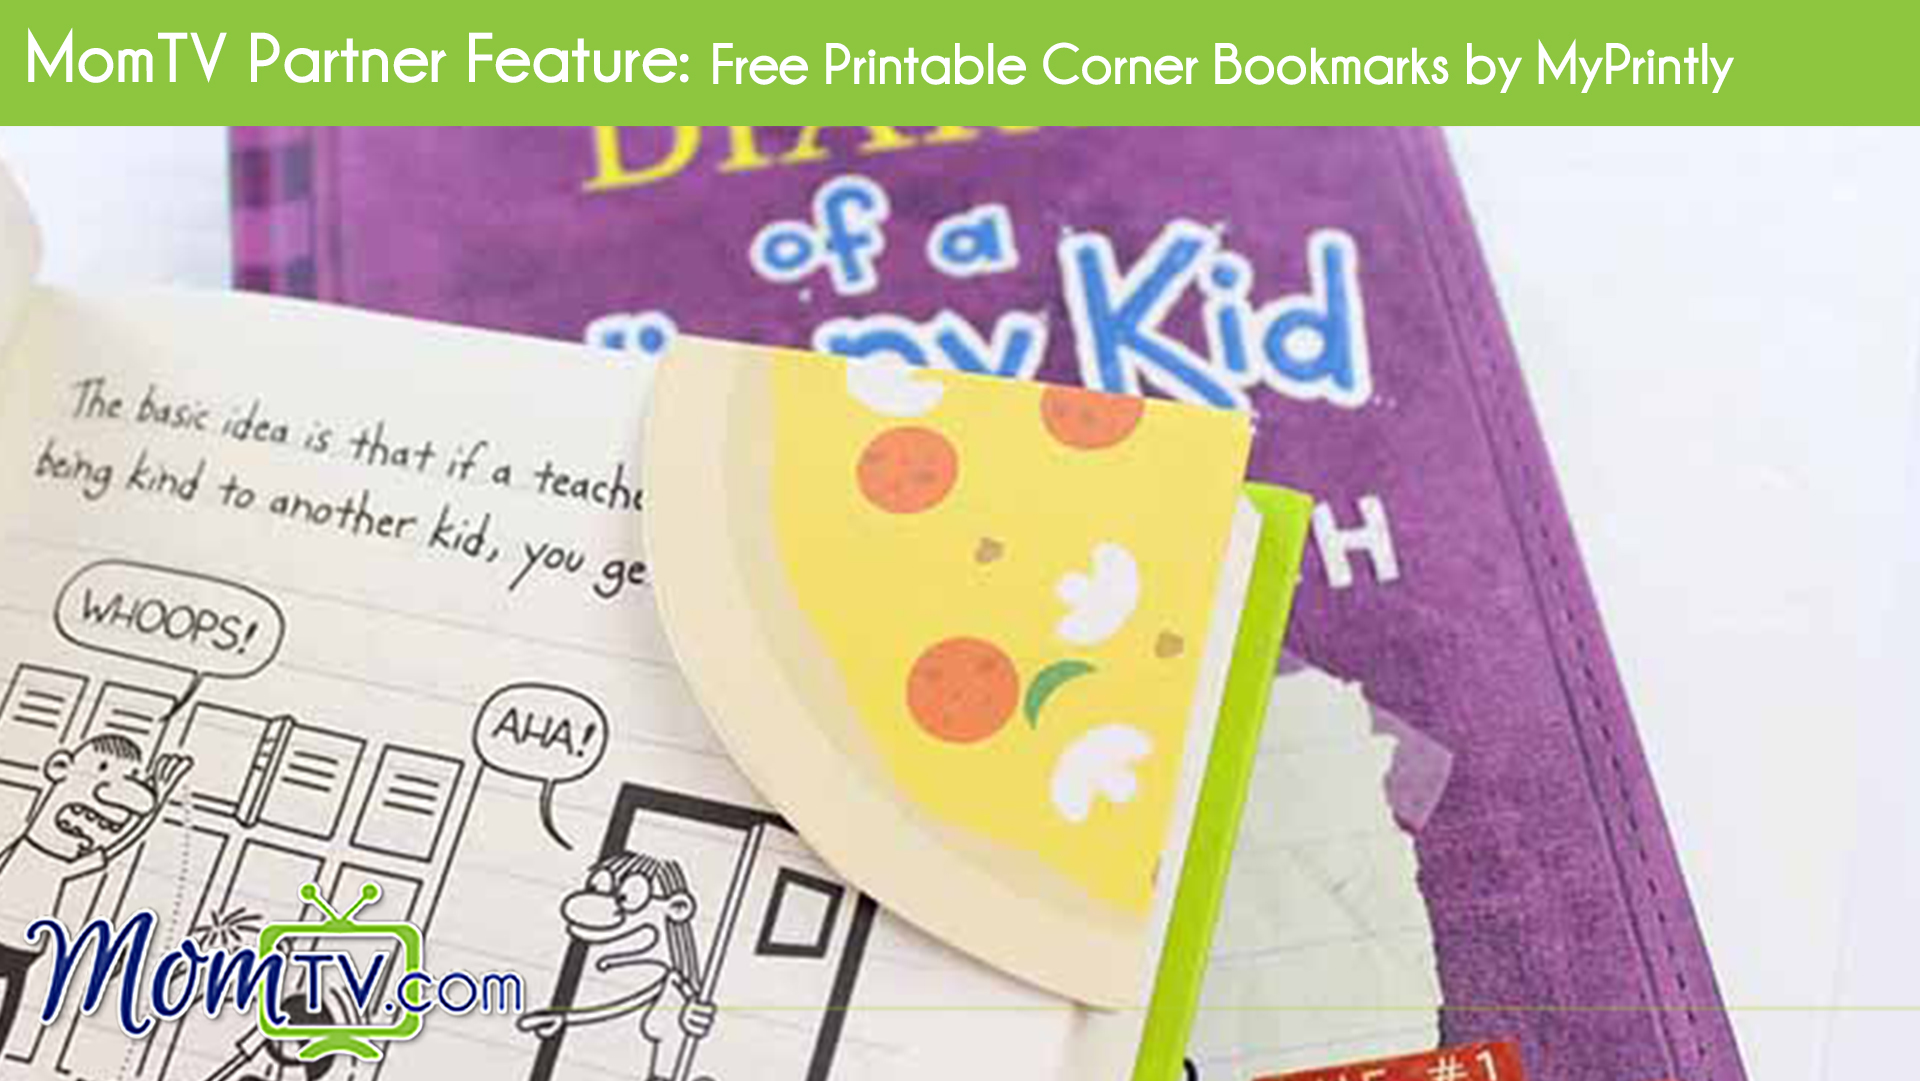 photograph relating to Free Printable Corner Bookmarks named MomTV Husband or wife Function: Cost-free Printable Corner Bookmarks as a result of